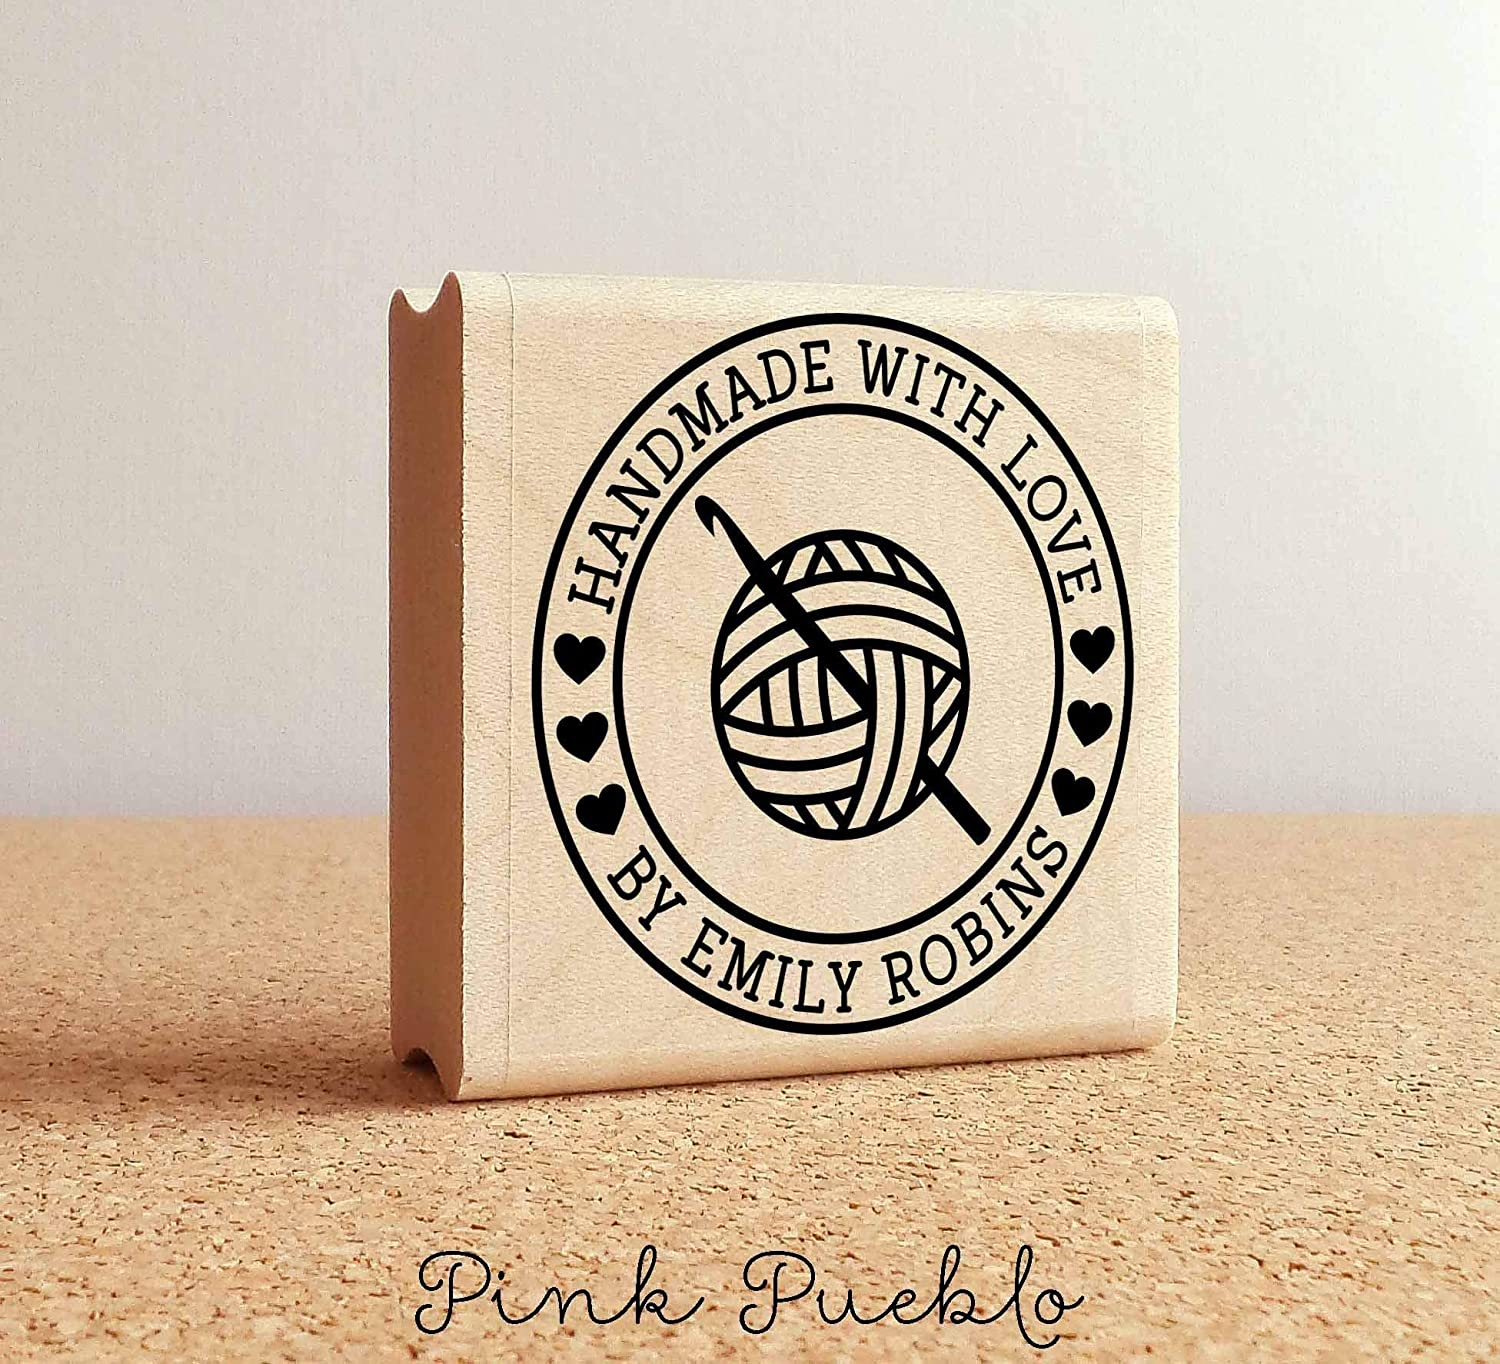 B0163K9SJ4 Personalized Crochet Rubber Stamp, Handmade with Love Crochet Yarn Stamp 81J88k5oEoL